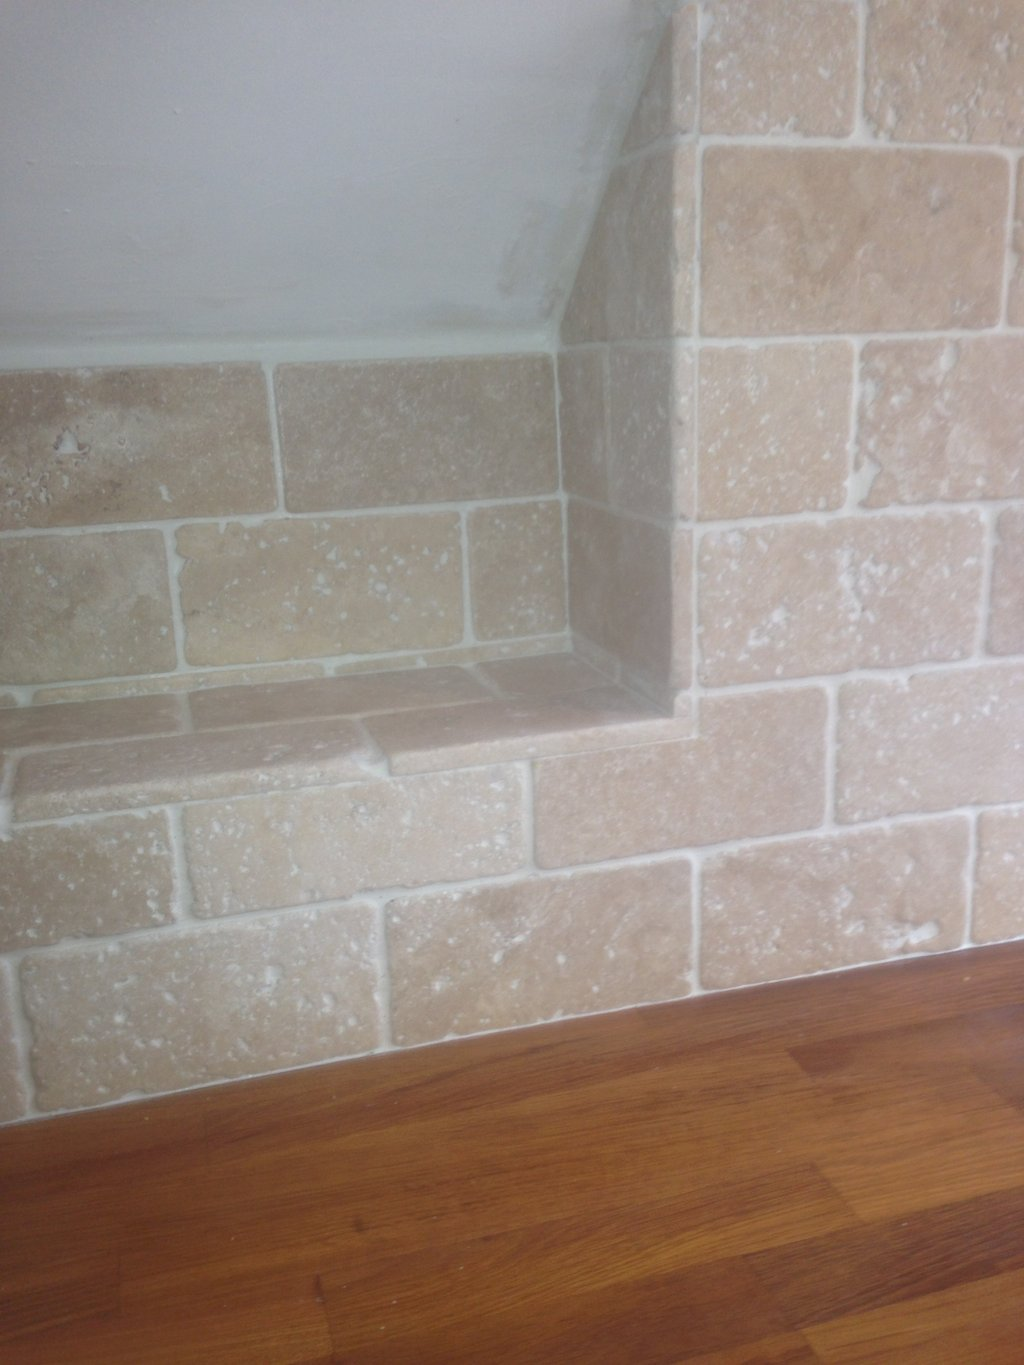 Gallery 1st Choice Tiling Plastering Is Travertine Tiles Good For The Bathroom?